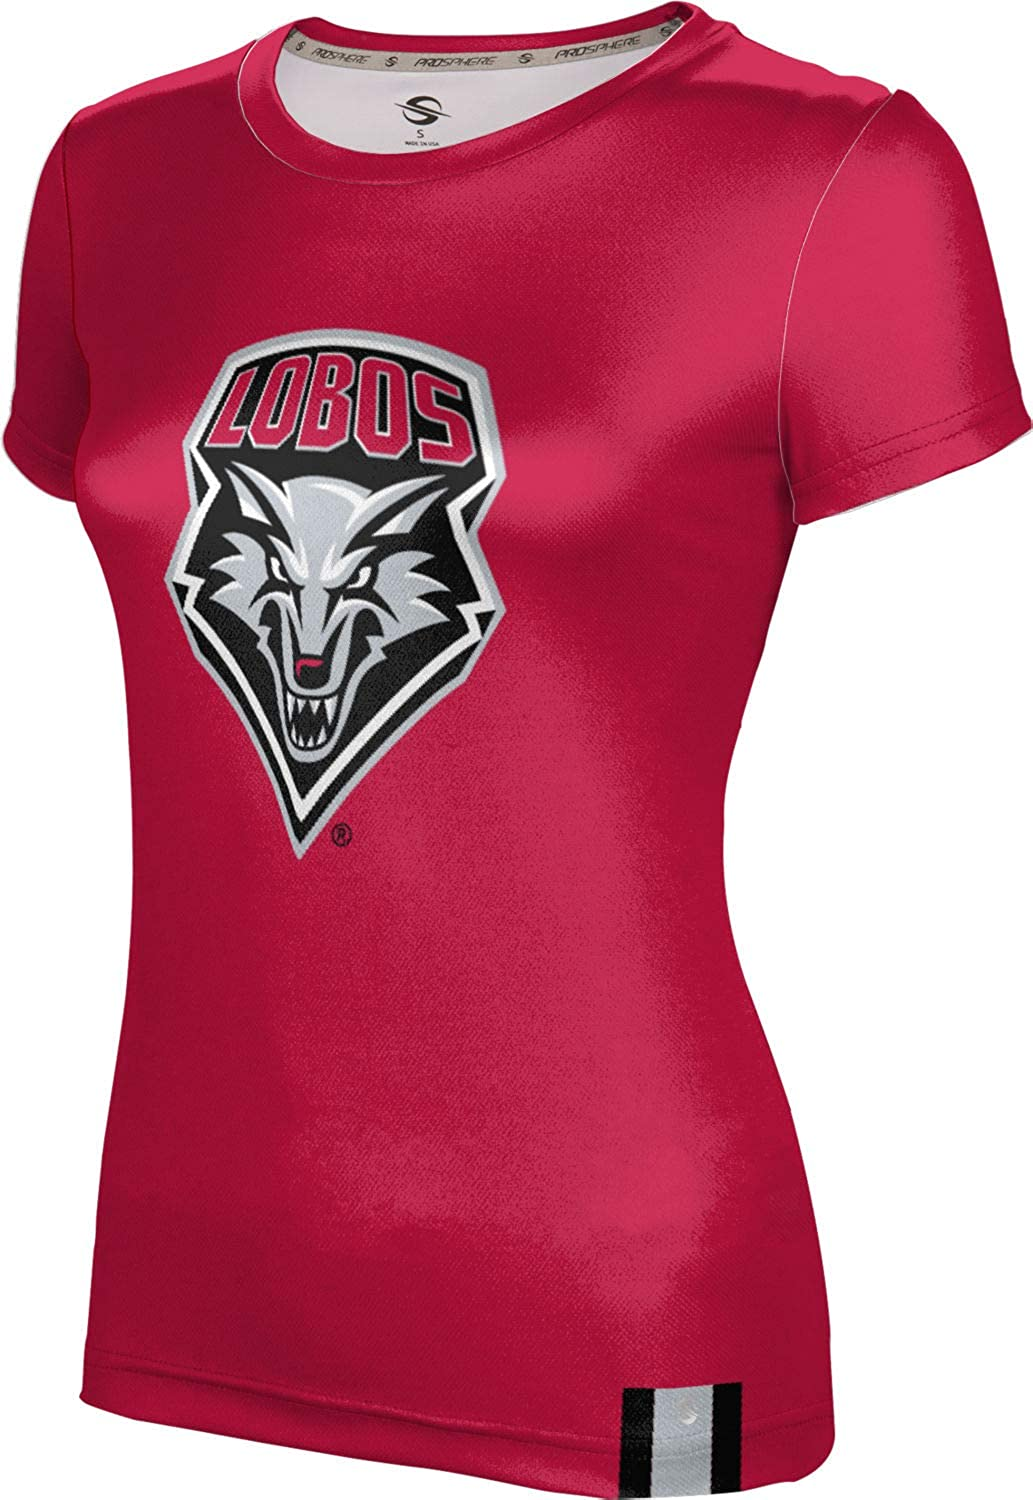 ProSphere University of New Mexico Girls' Performance T-Shirt (Solid)